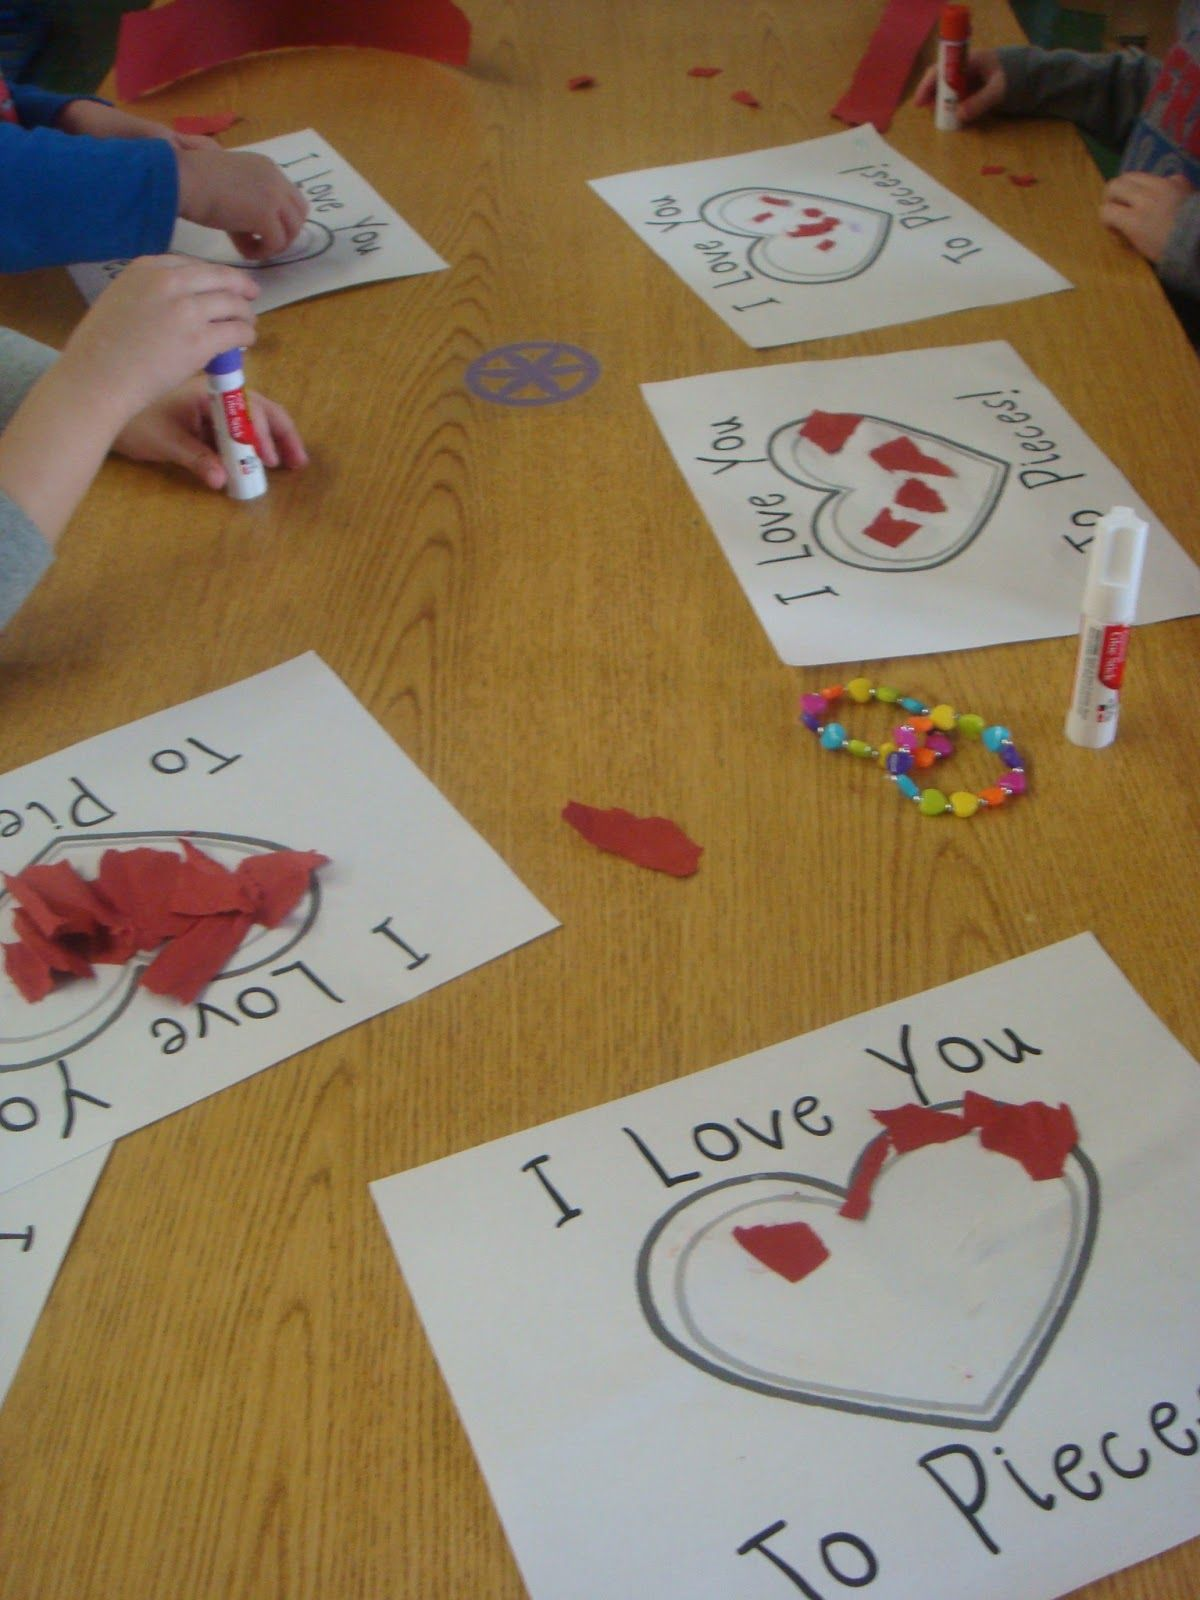 Parent S Valentines T Behind The Scenes Mrs Gloudemans Class Valentines